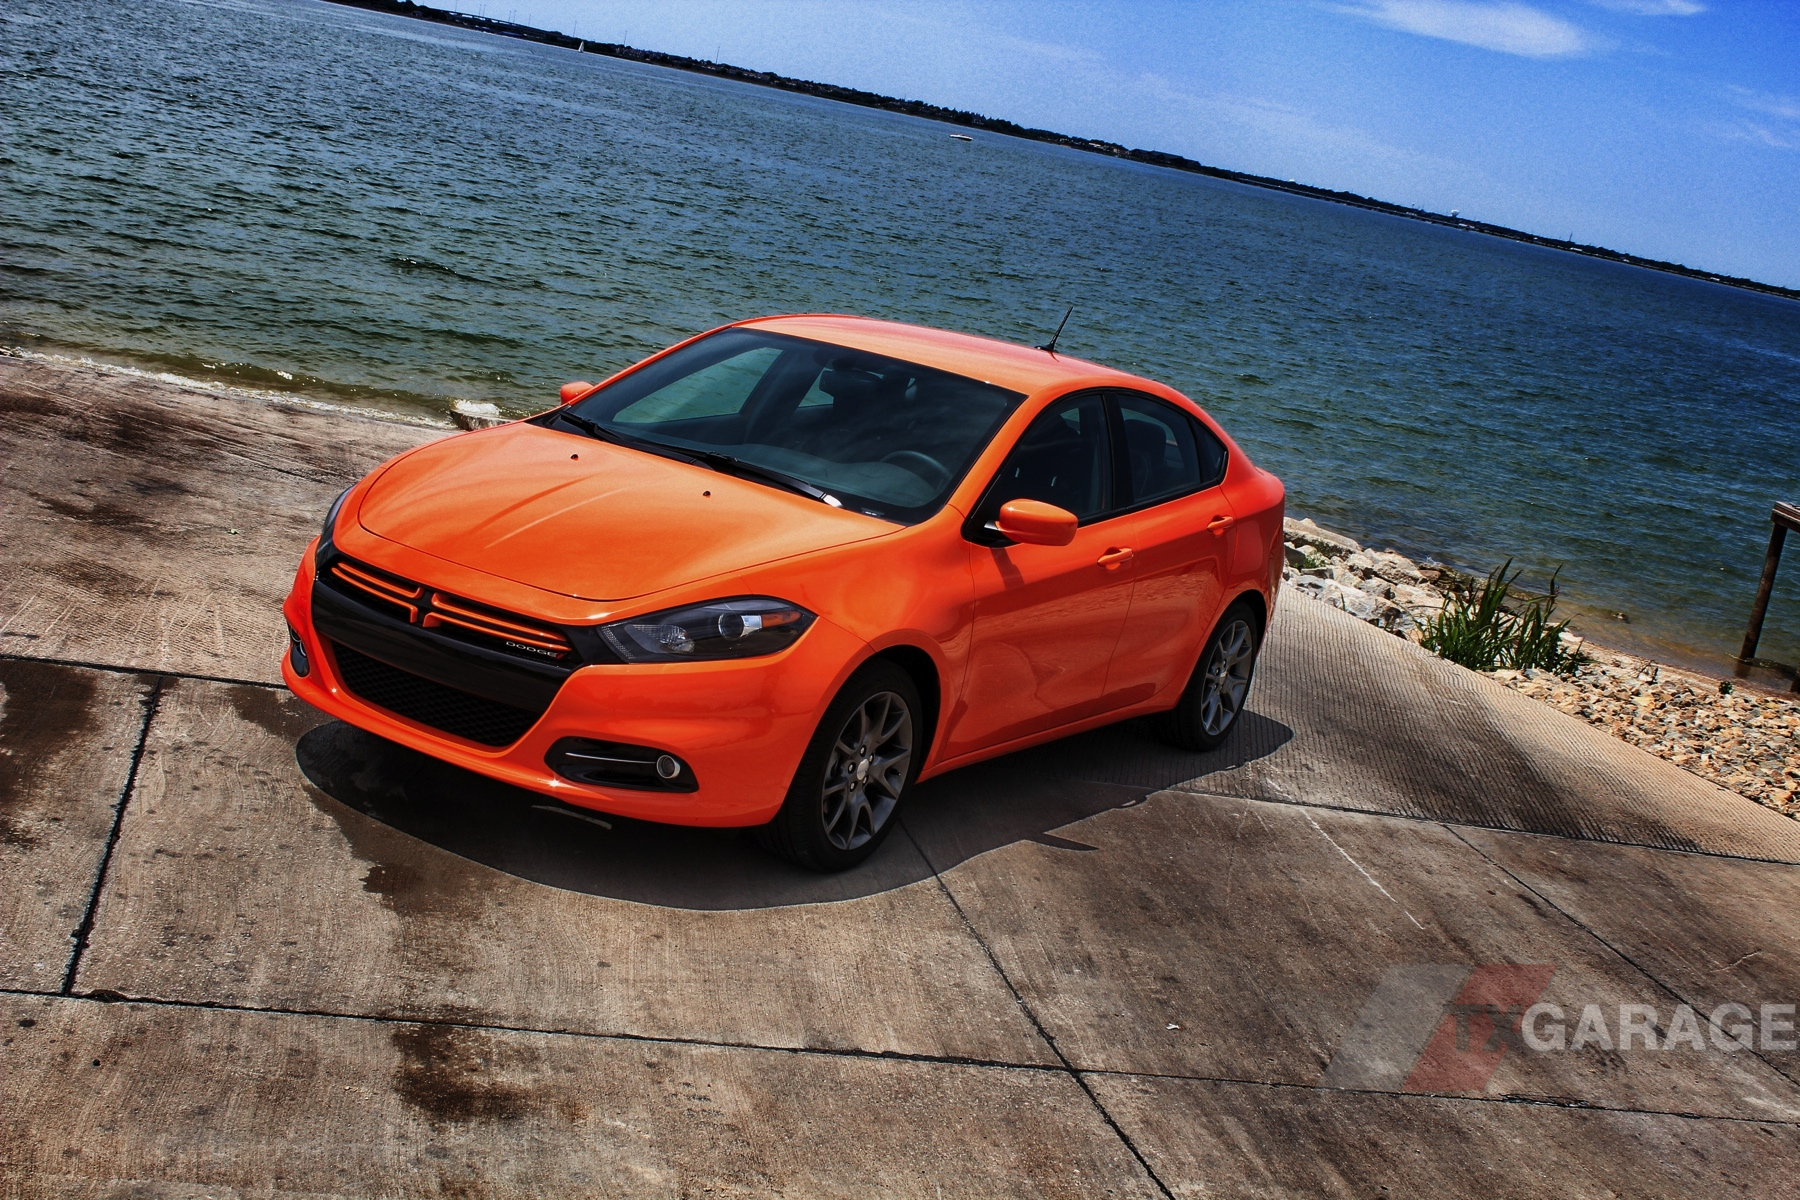 2013 Dodge Dart Rallye 01 Txgarage